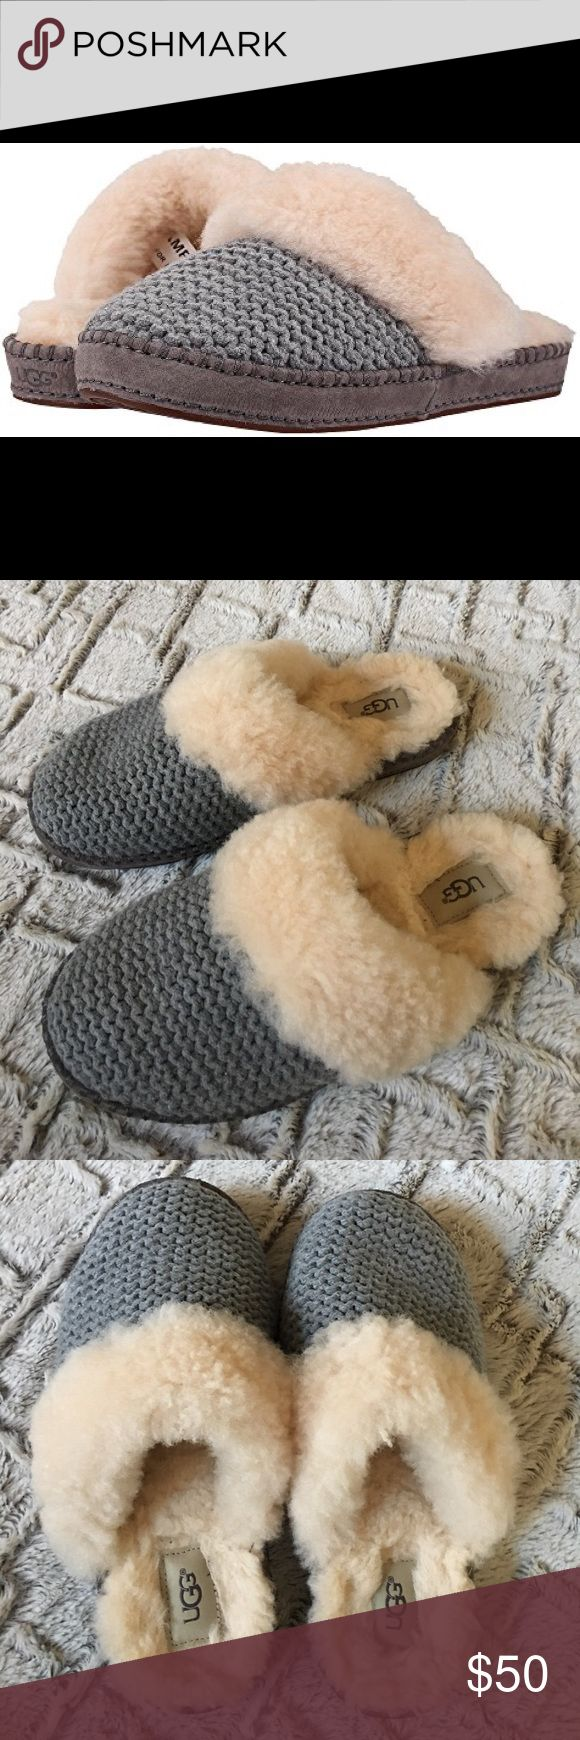 Gray sweater UGG slippers Gray sweater UGG slippers. Very warm. Size 7. In excellent used condition. UGG Shoes Slippers